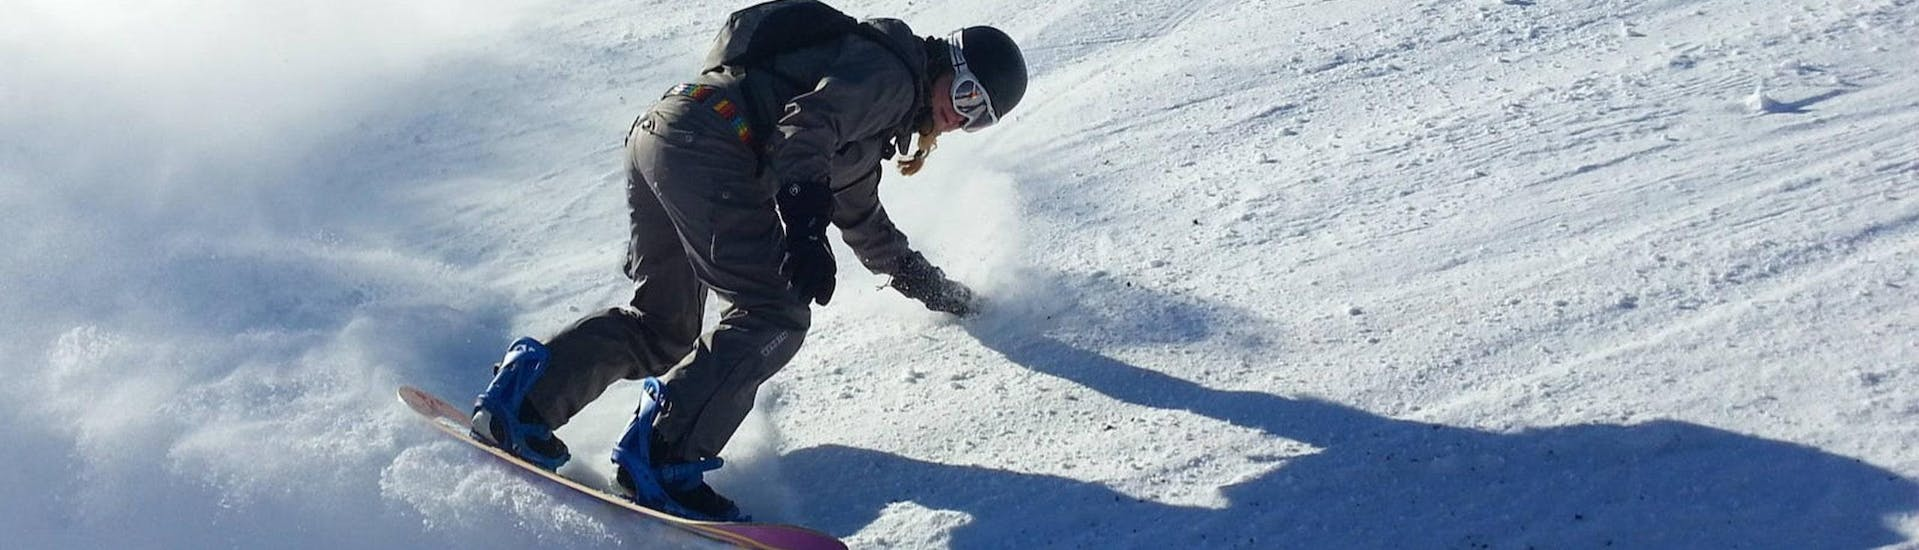 A female snowboarder is drawing tracks in the freshly prepared ski piste during her snowboarding lessons for kids and adults with Skischule Schwarzenberg am Bödele.